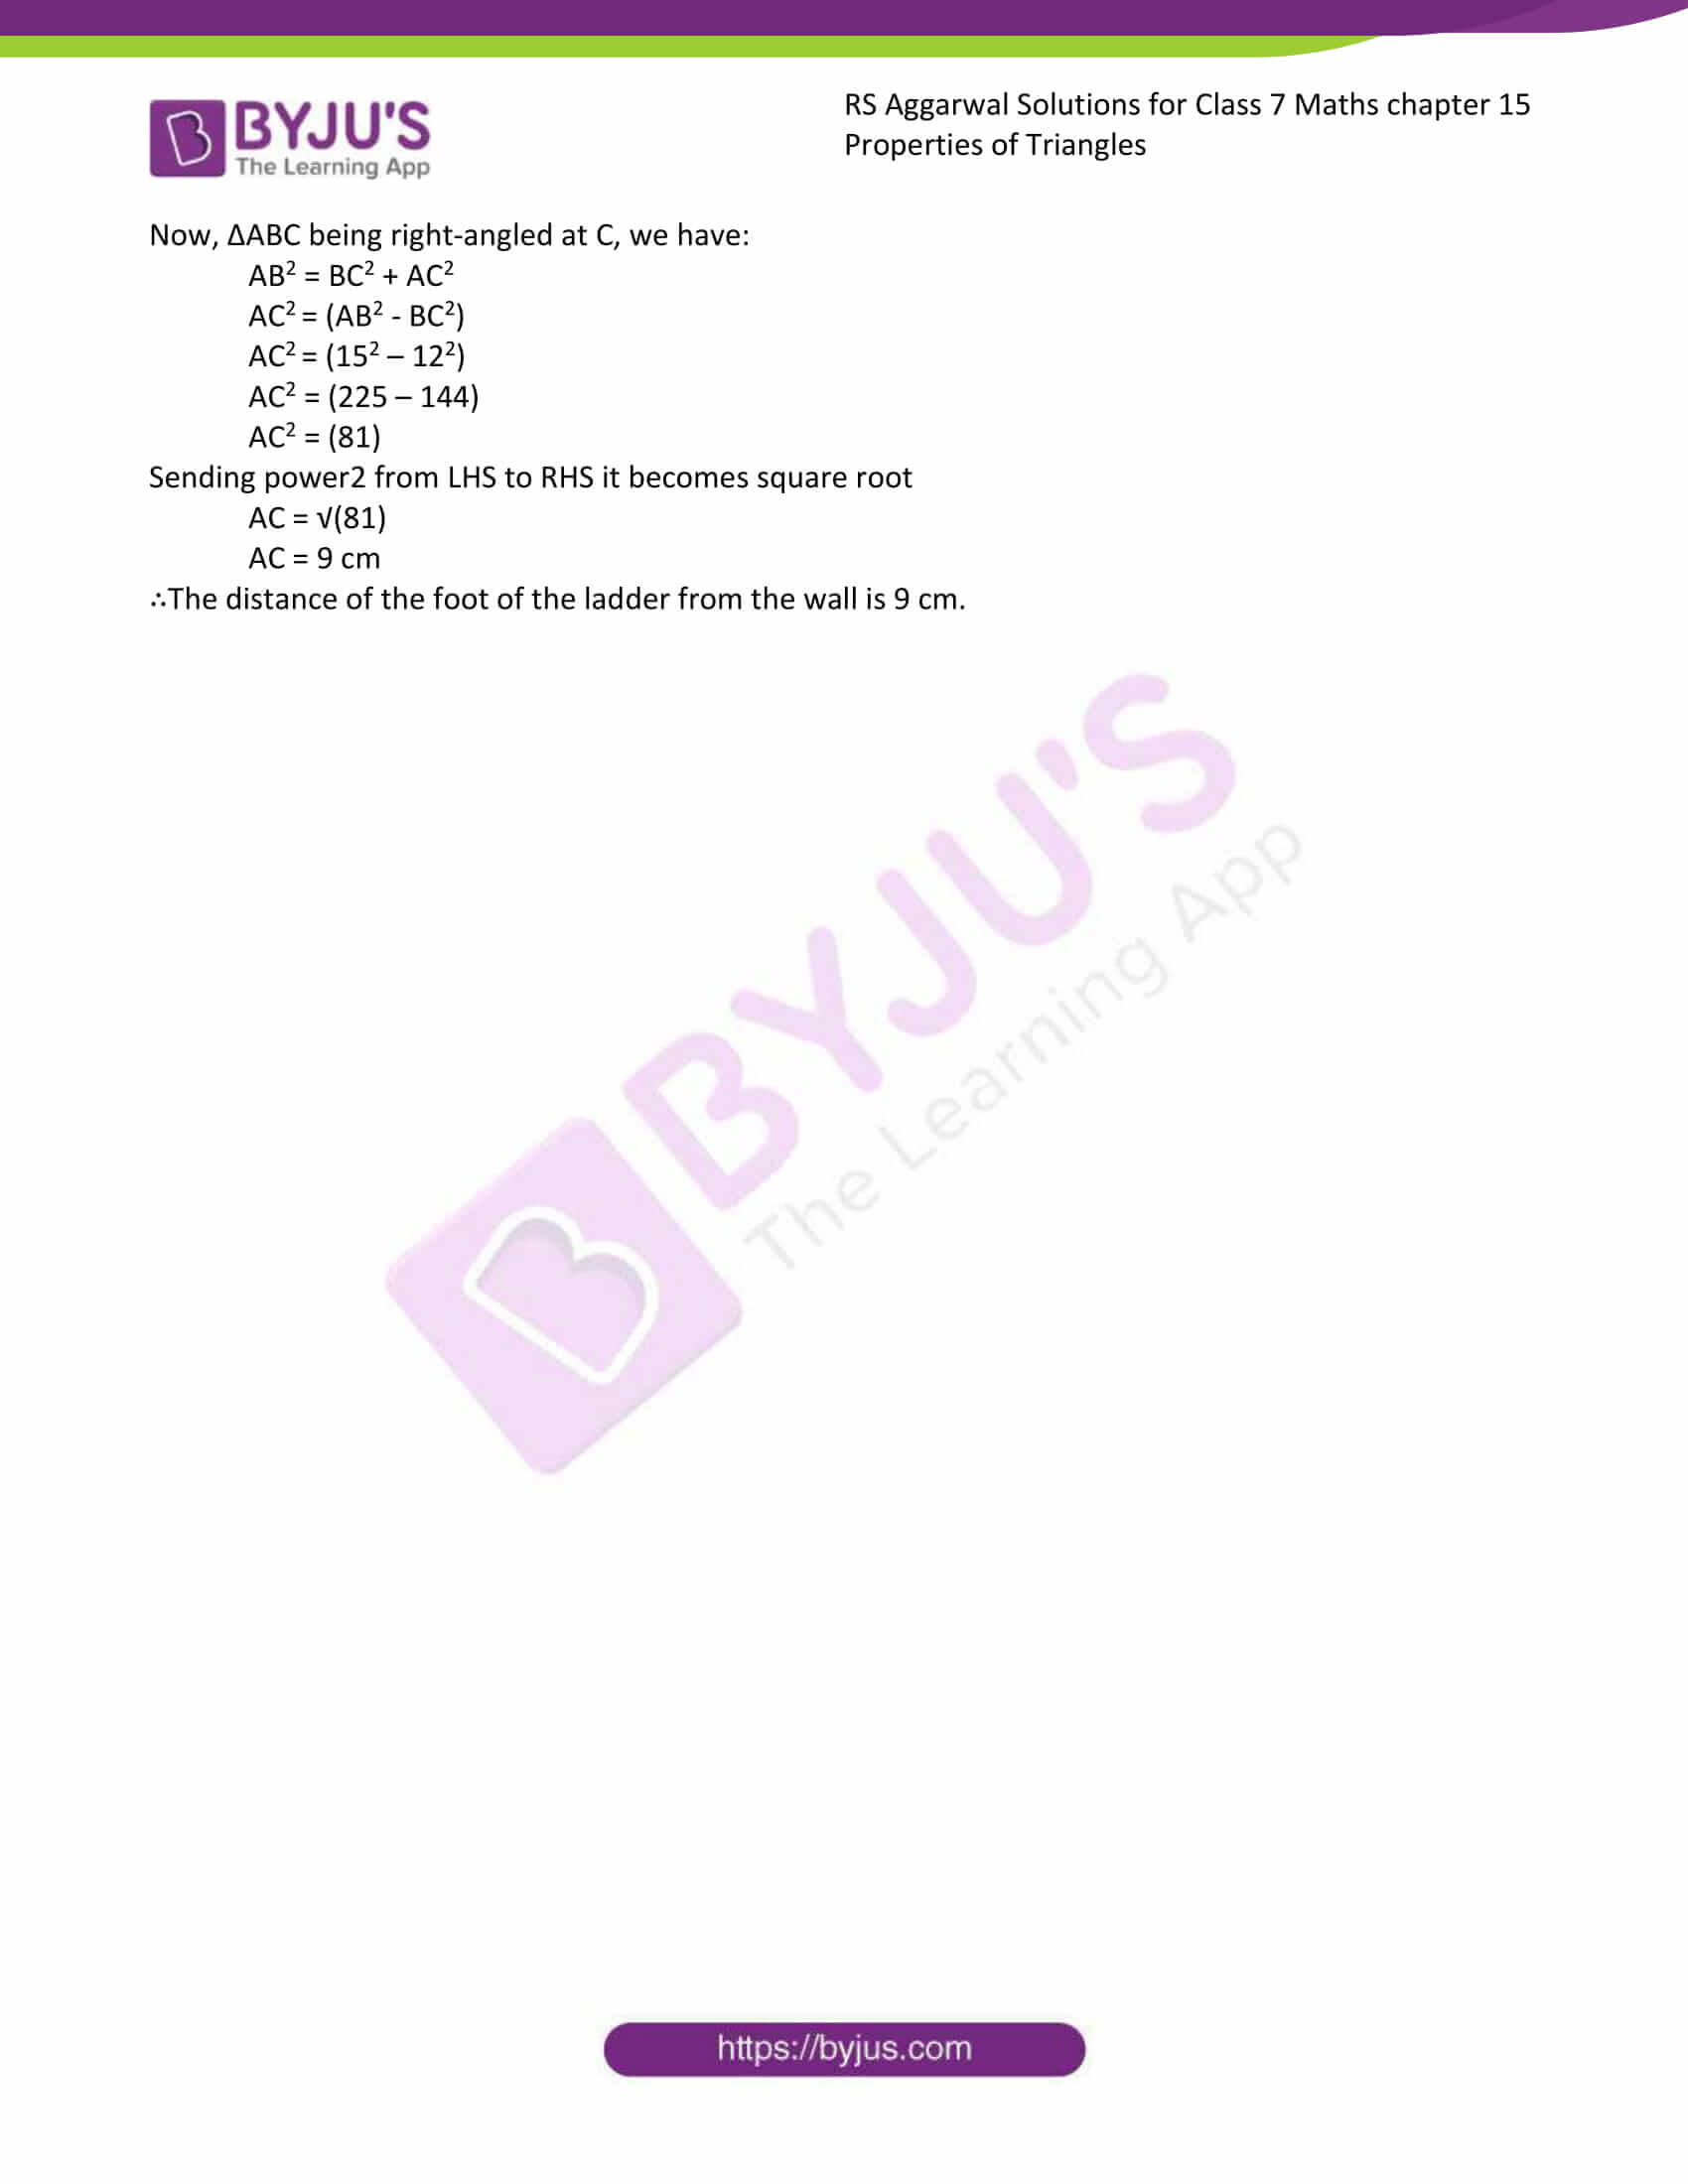 RS Aggarwal Solutions Class 7 Maths Chapter 15 Free Solutions 14